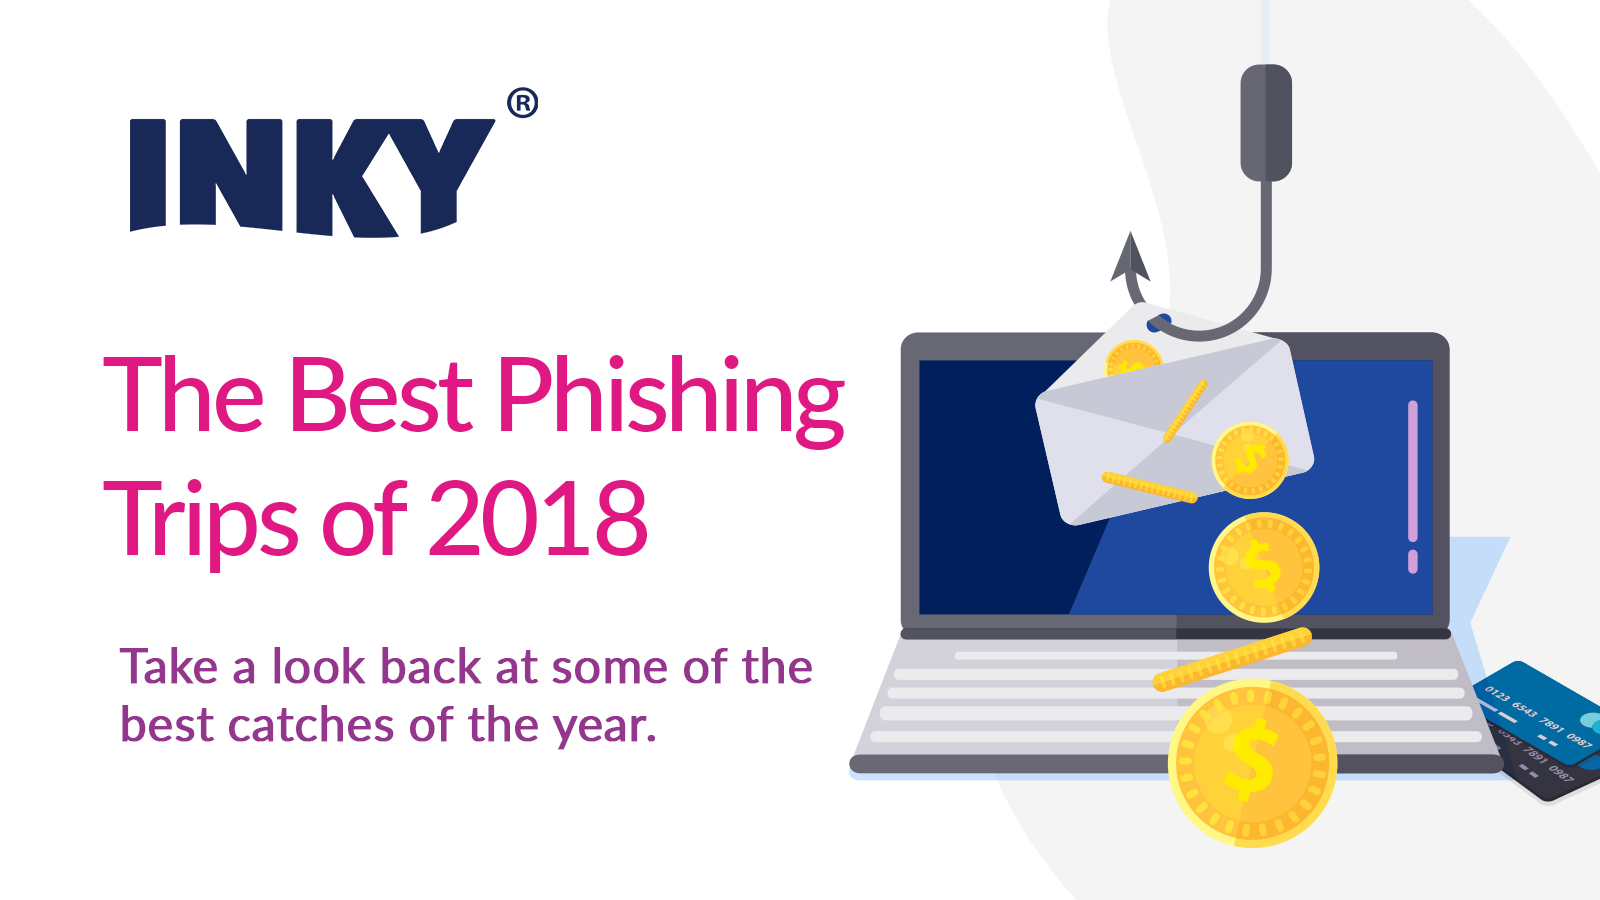 The Best Phishing Trips of 2018